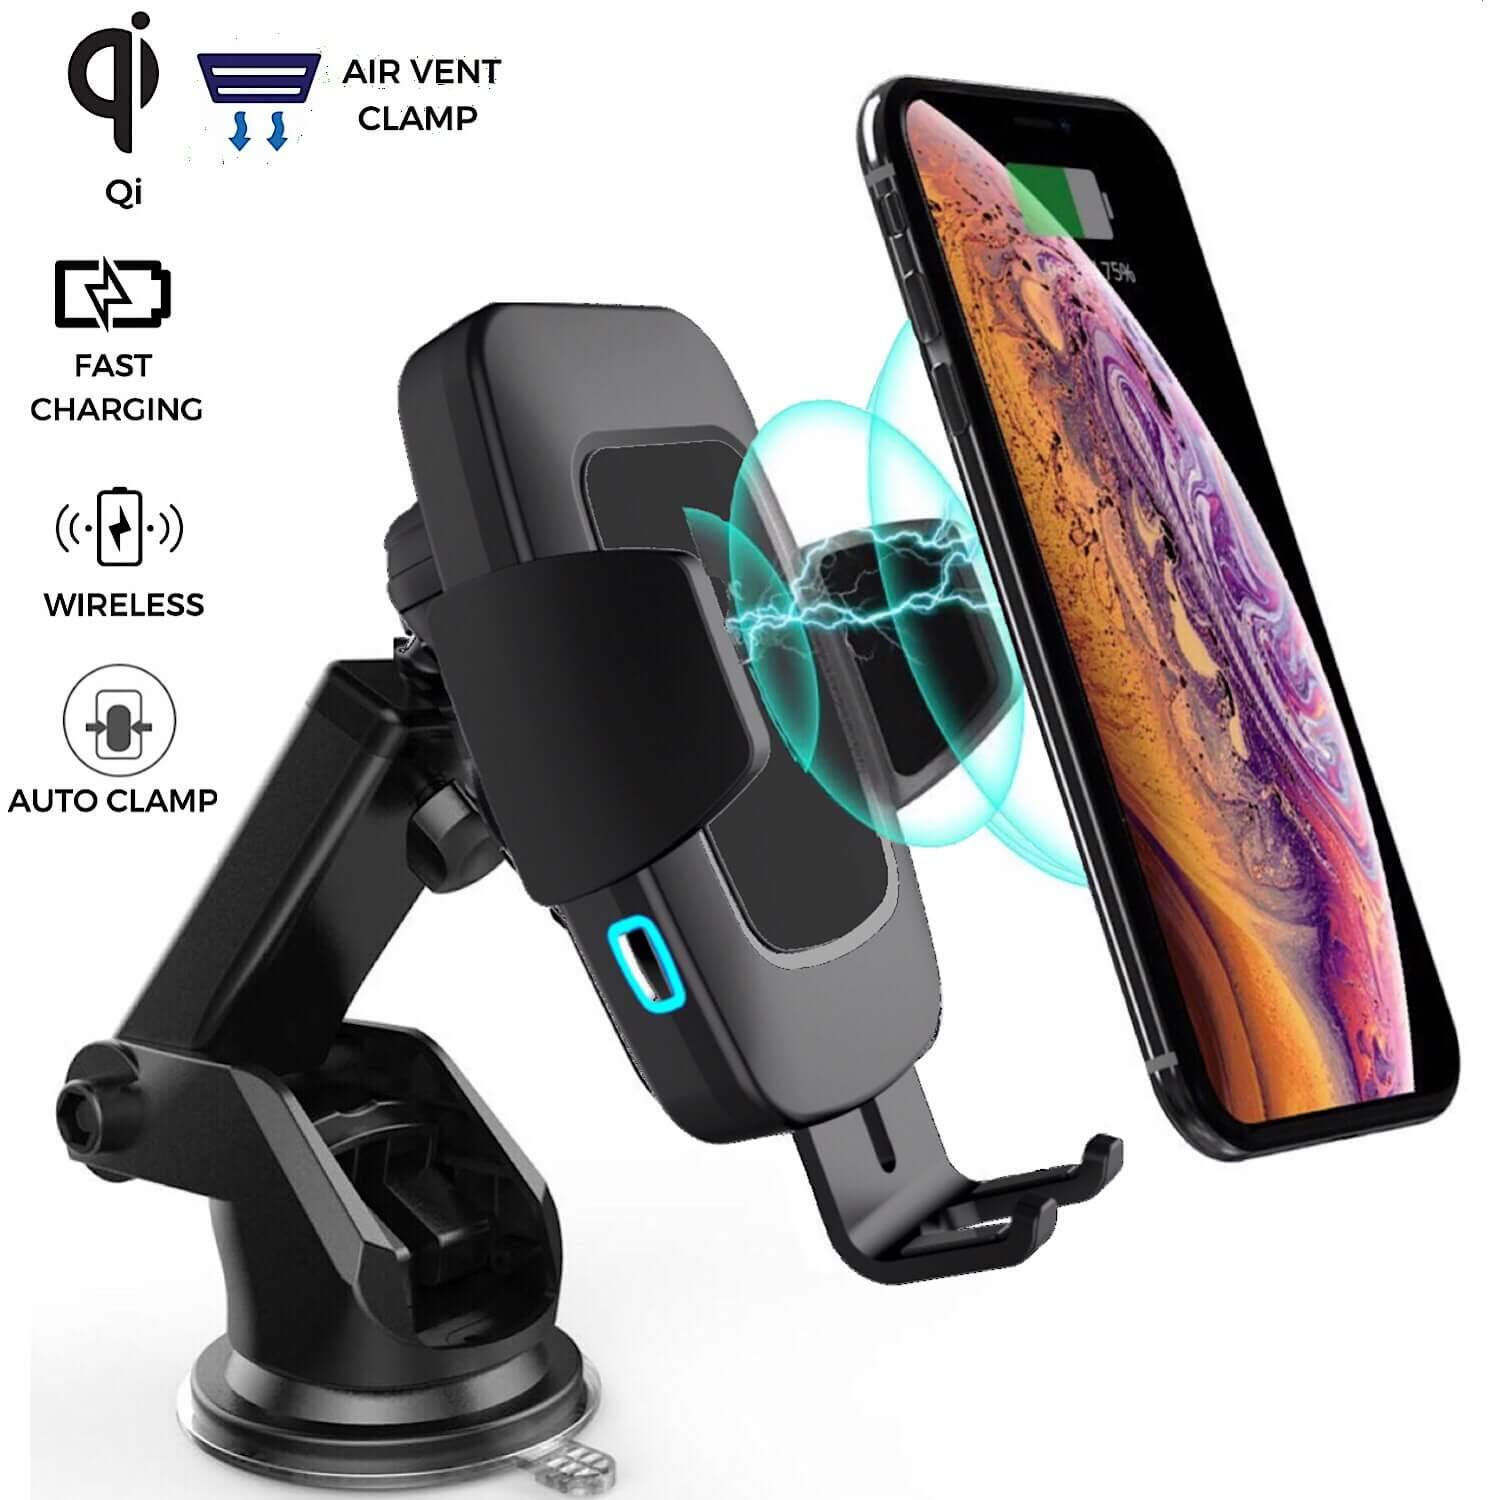 Alium Auto Clamp Wireless Car Charger | Wireless Charging Car Mount | 2 in 1 Function | Dual Suction or Clamp Option | 360 Rotation | Universal Compatible | LED Indication Light | Qi-Enabled Devices